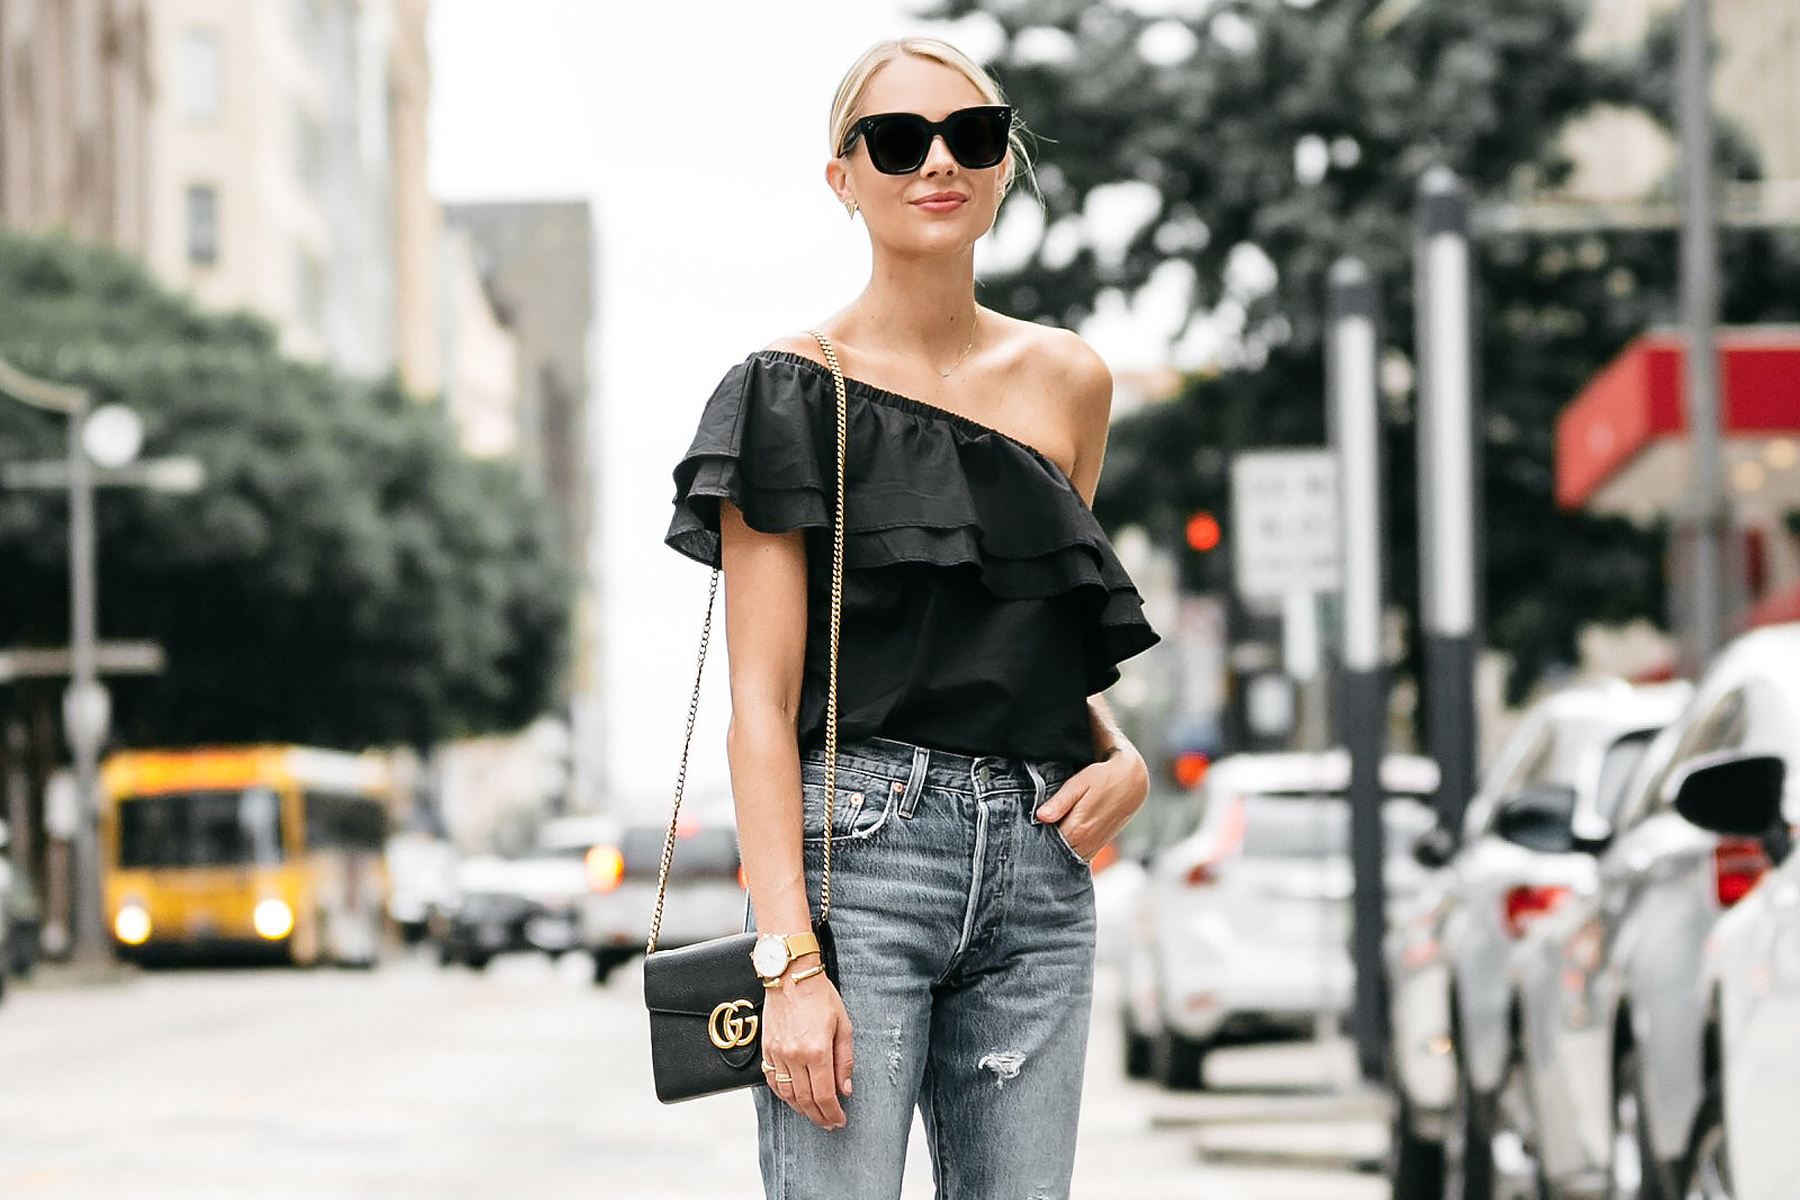 1494308f6a5 Blonde woman wearing nordstrom black one shoulder ruffle top levis  distressed jeans gucci marmont handbag street